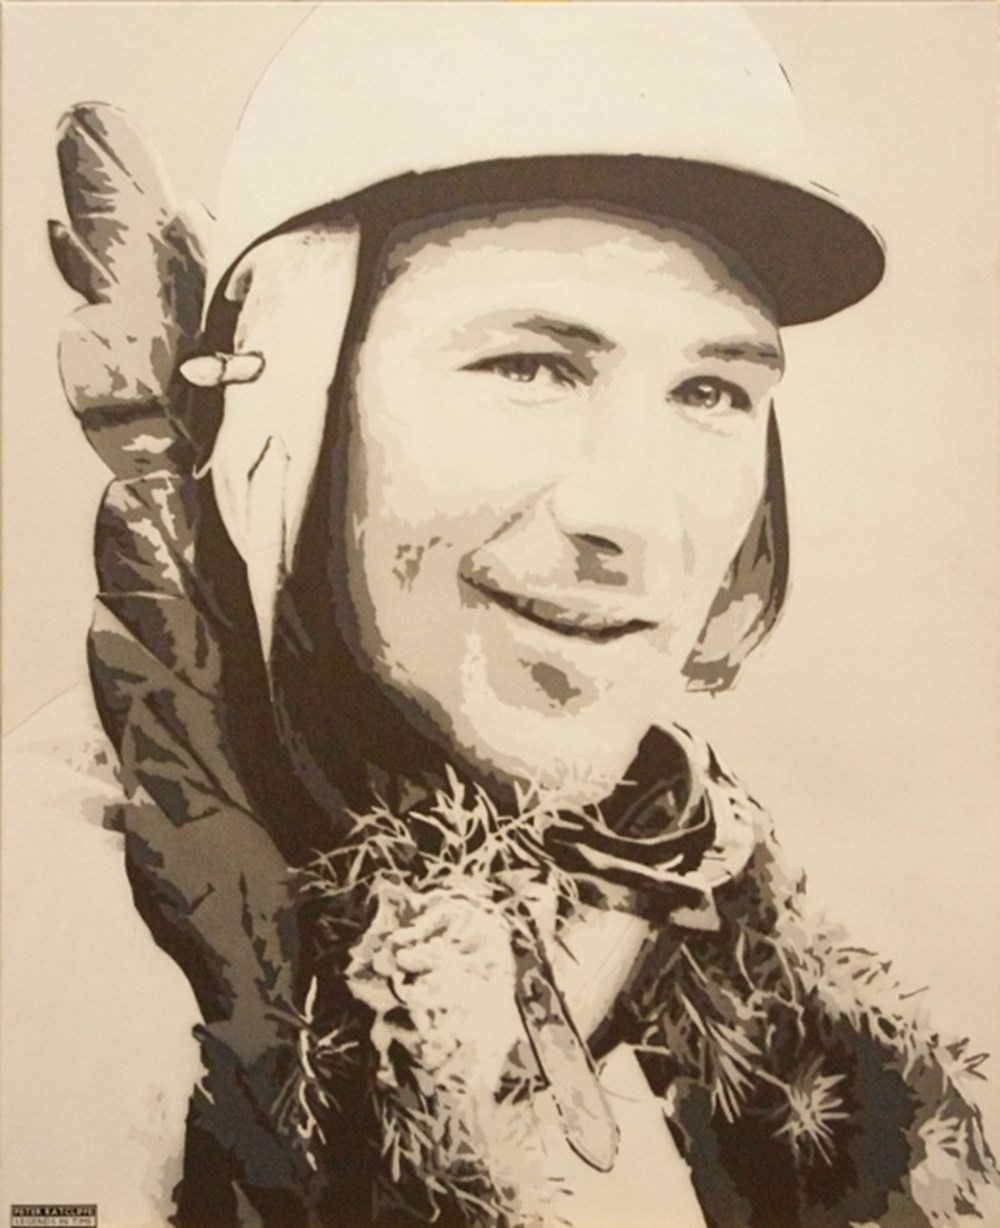 Lot 82. - Stirling Moss canvas print.